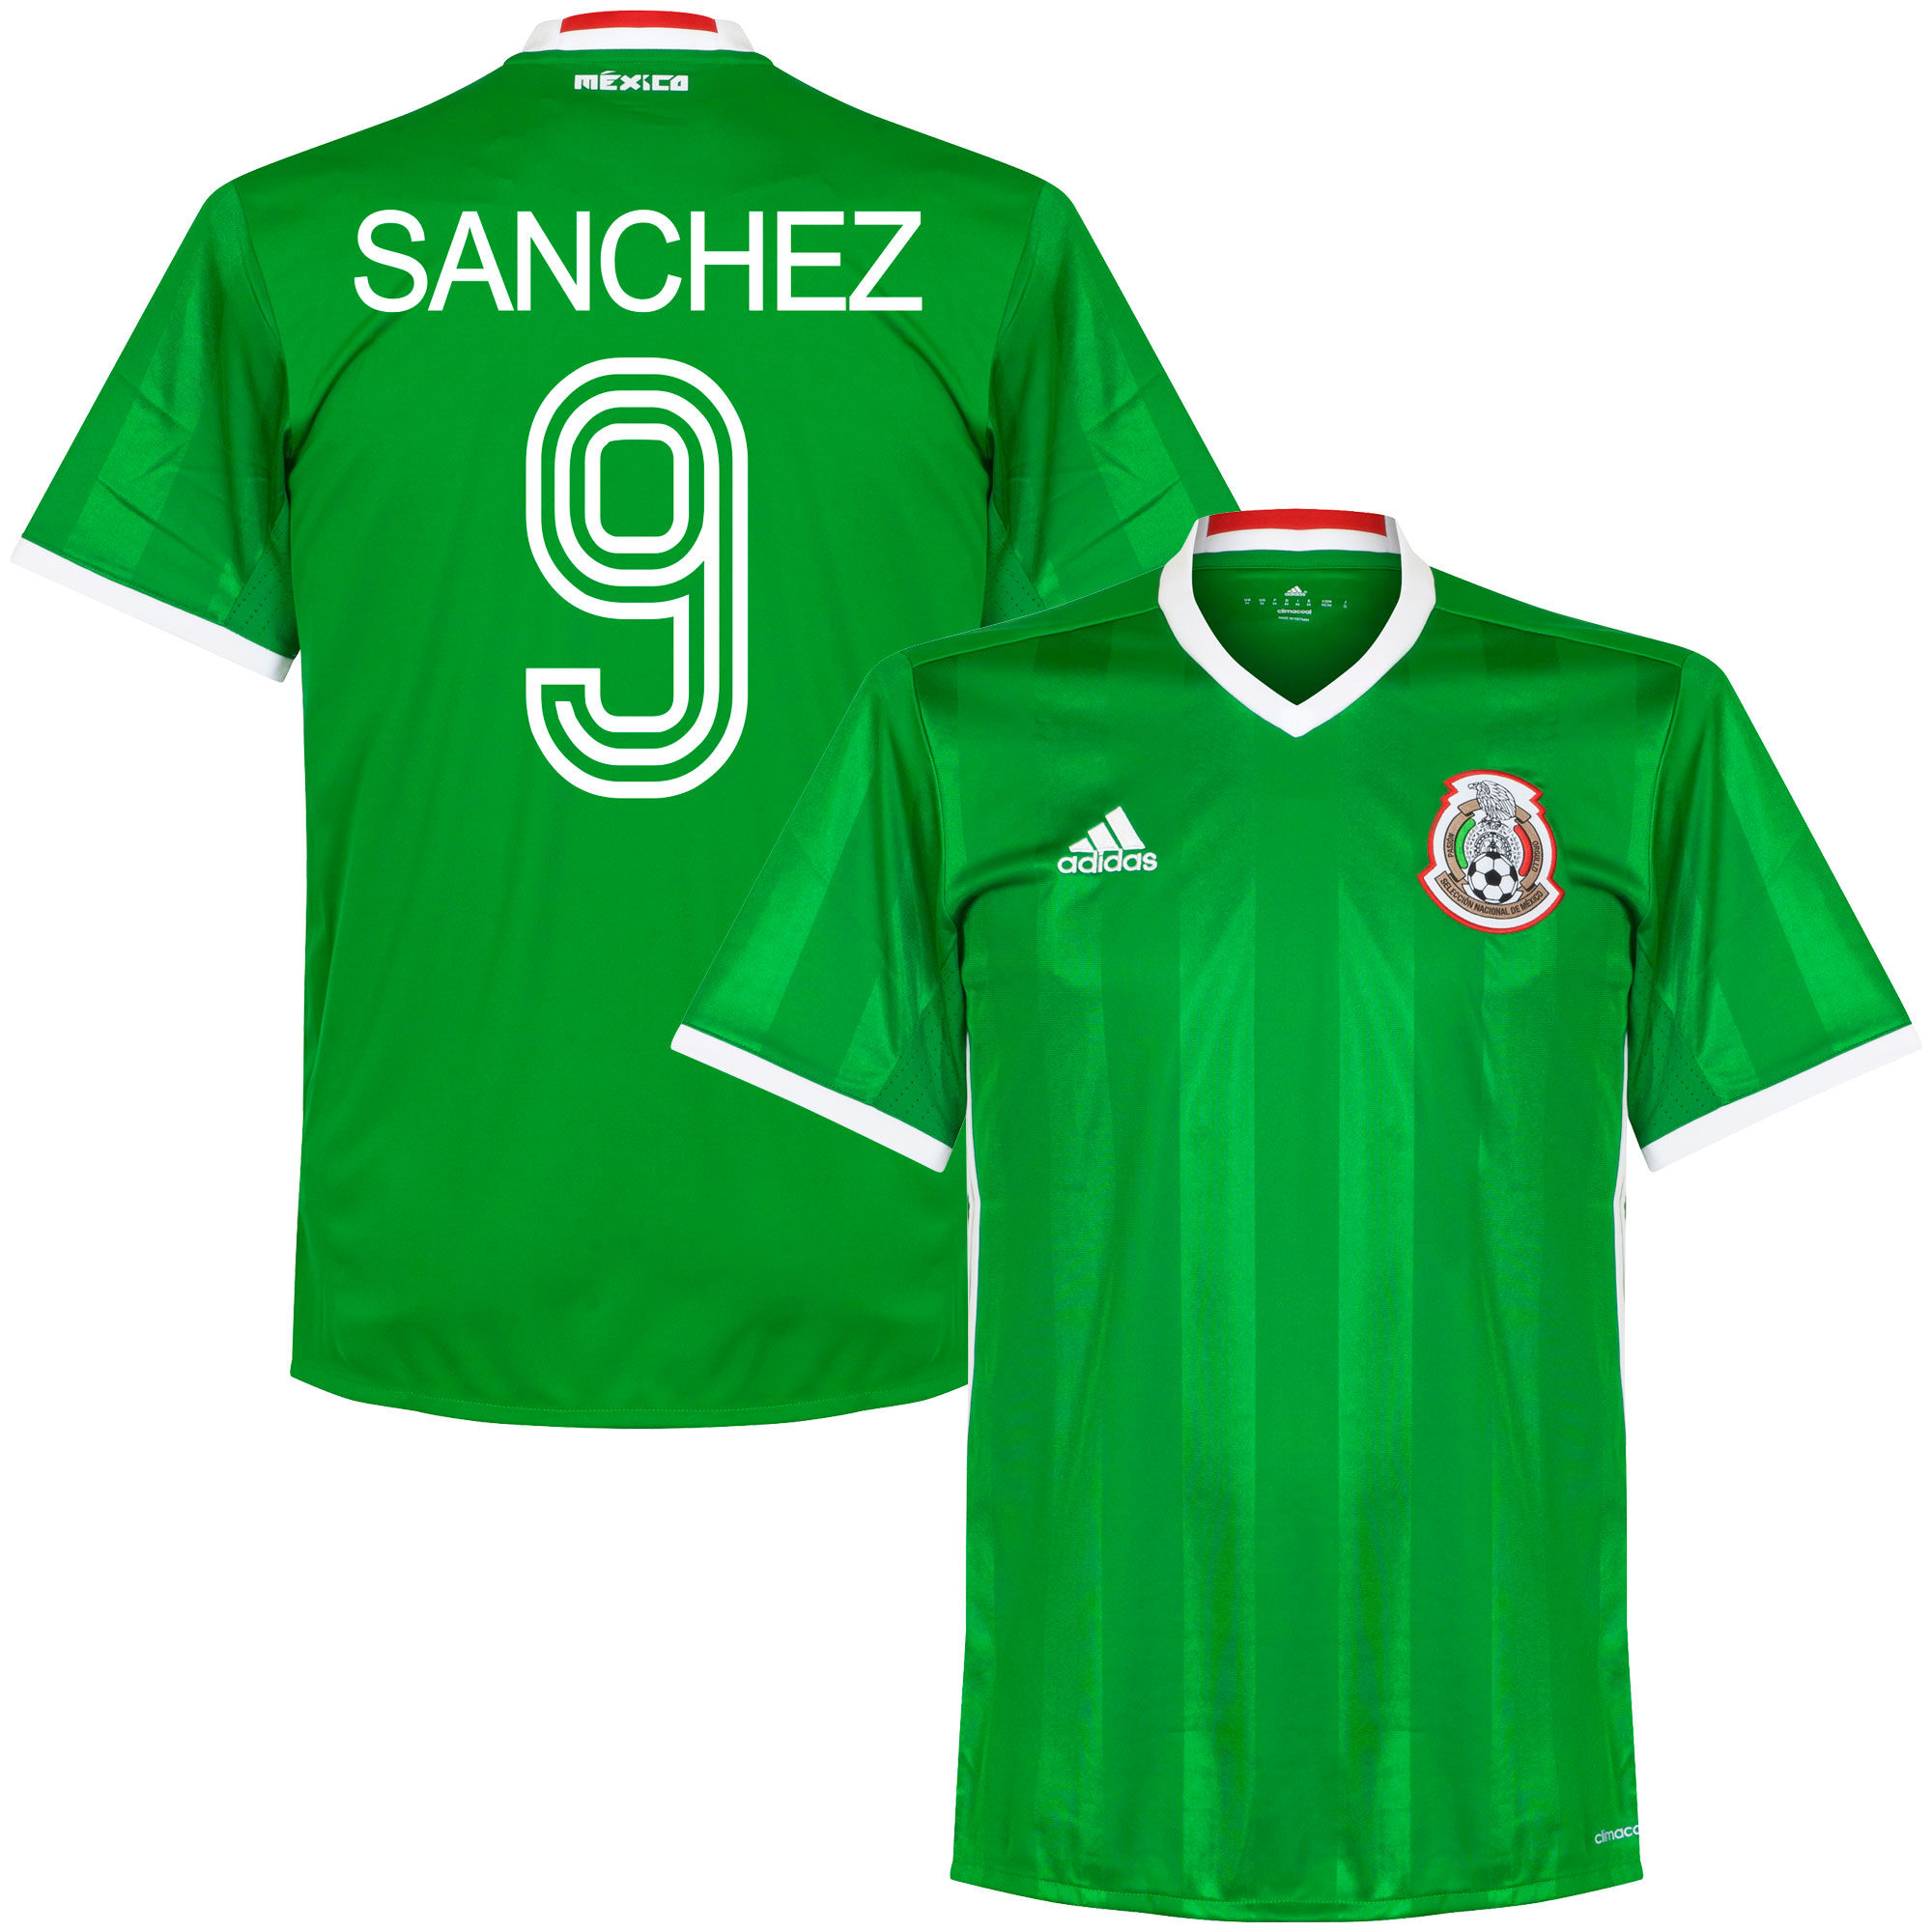 Mexico Home Sanchez Jersey 2016 / 2017 (Retro Style Printing) - 50